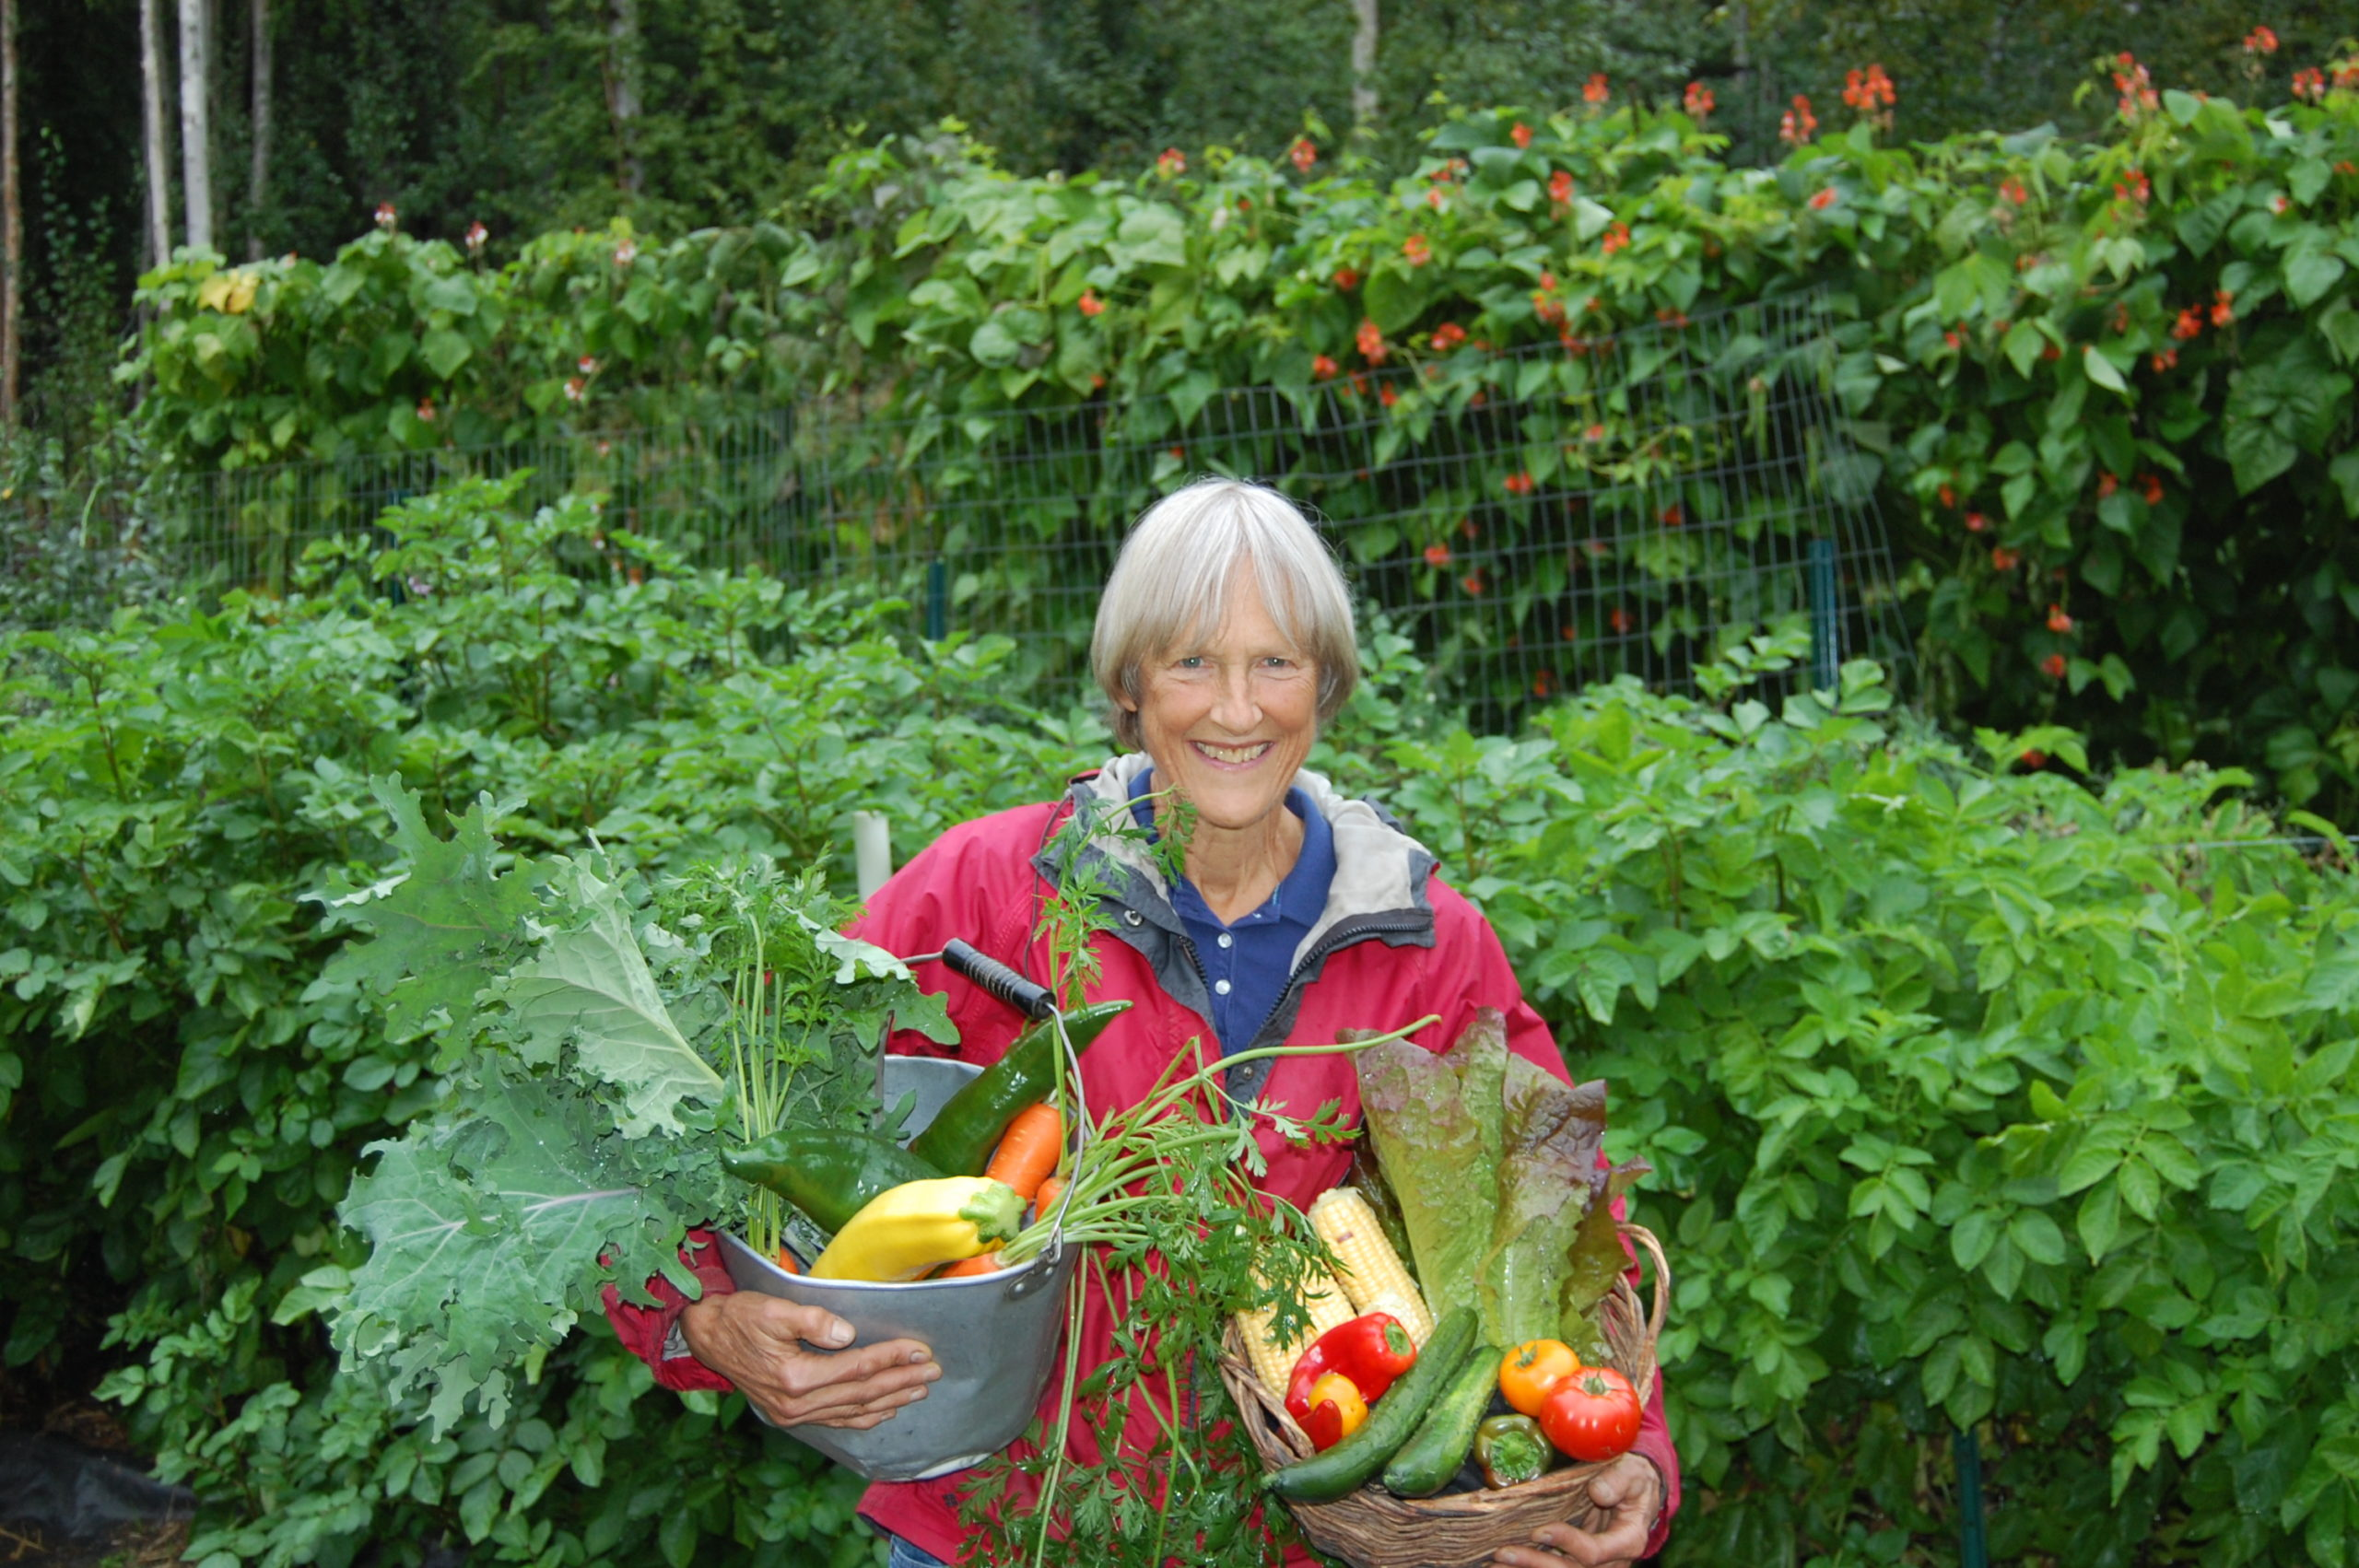 Terry Riechardt poses with two baskets of vegetables from her garden. Photo courtesy of Terry Reichardt.